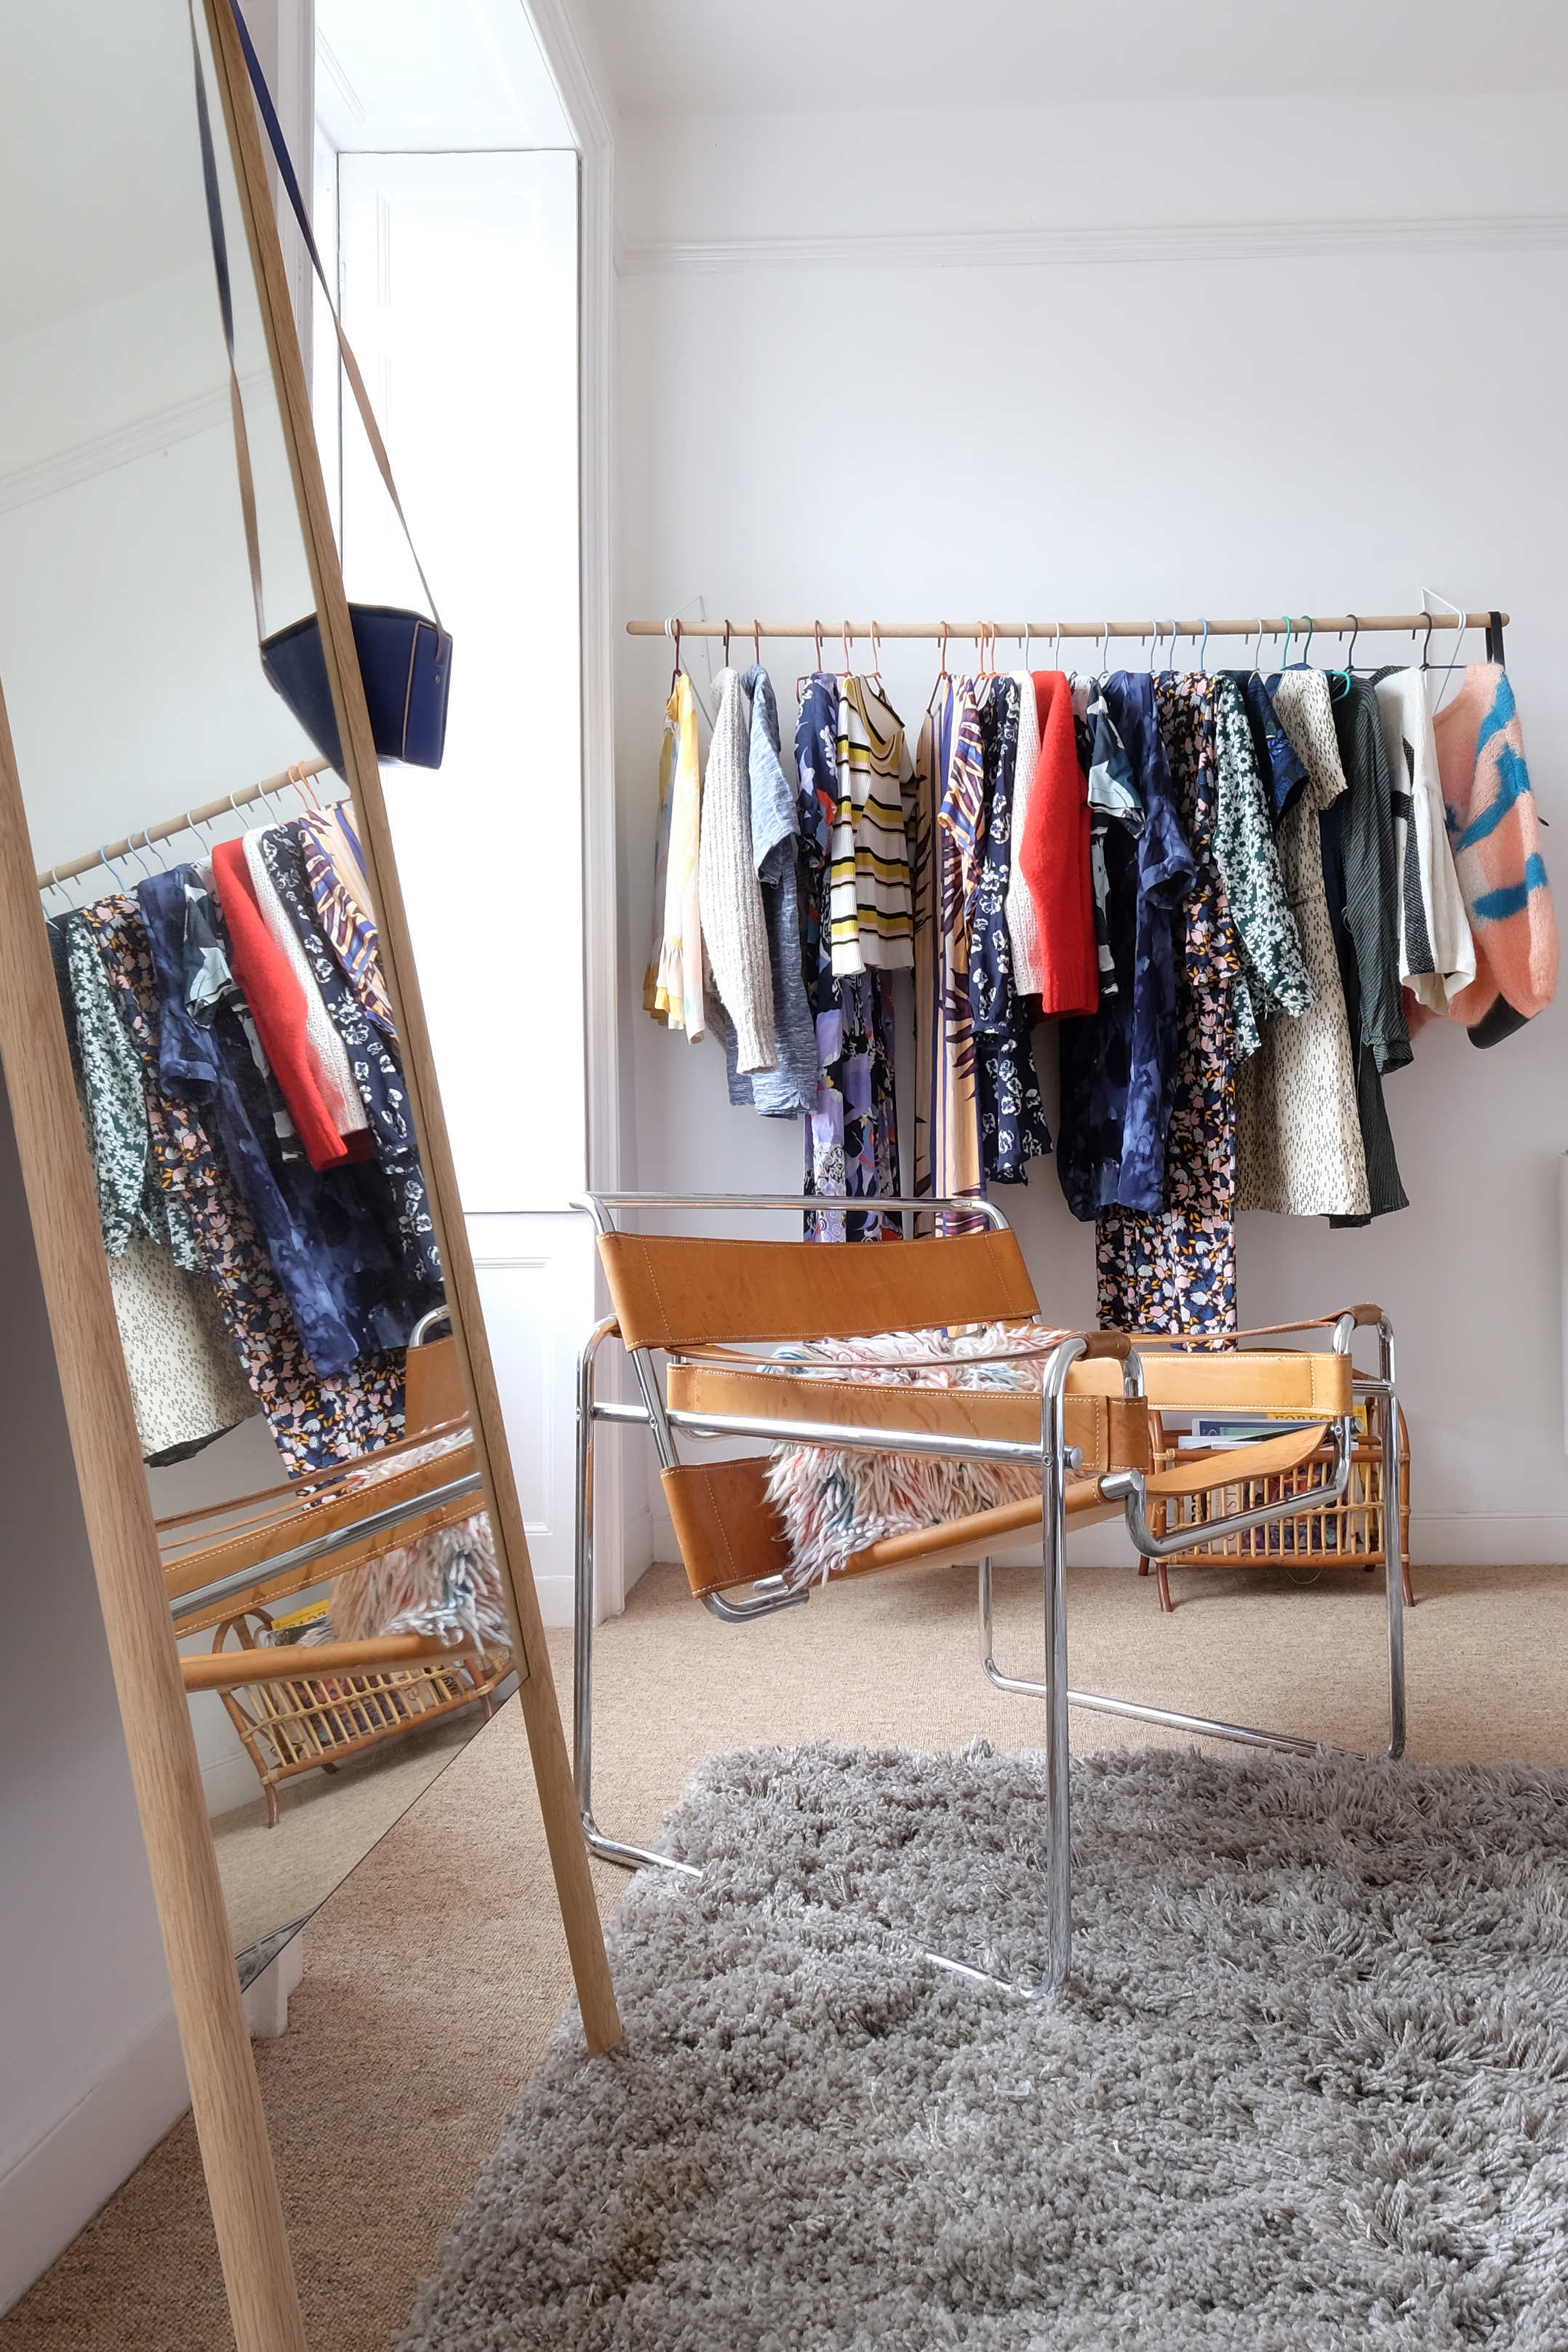 How To Create A Bedroom Closet With Clothing Racks Apartment Therapy